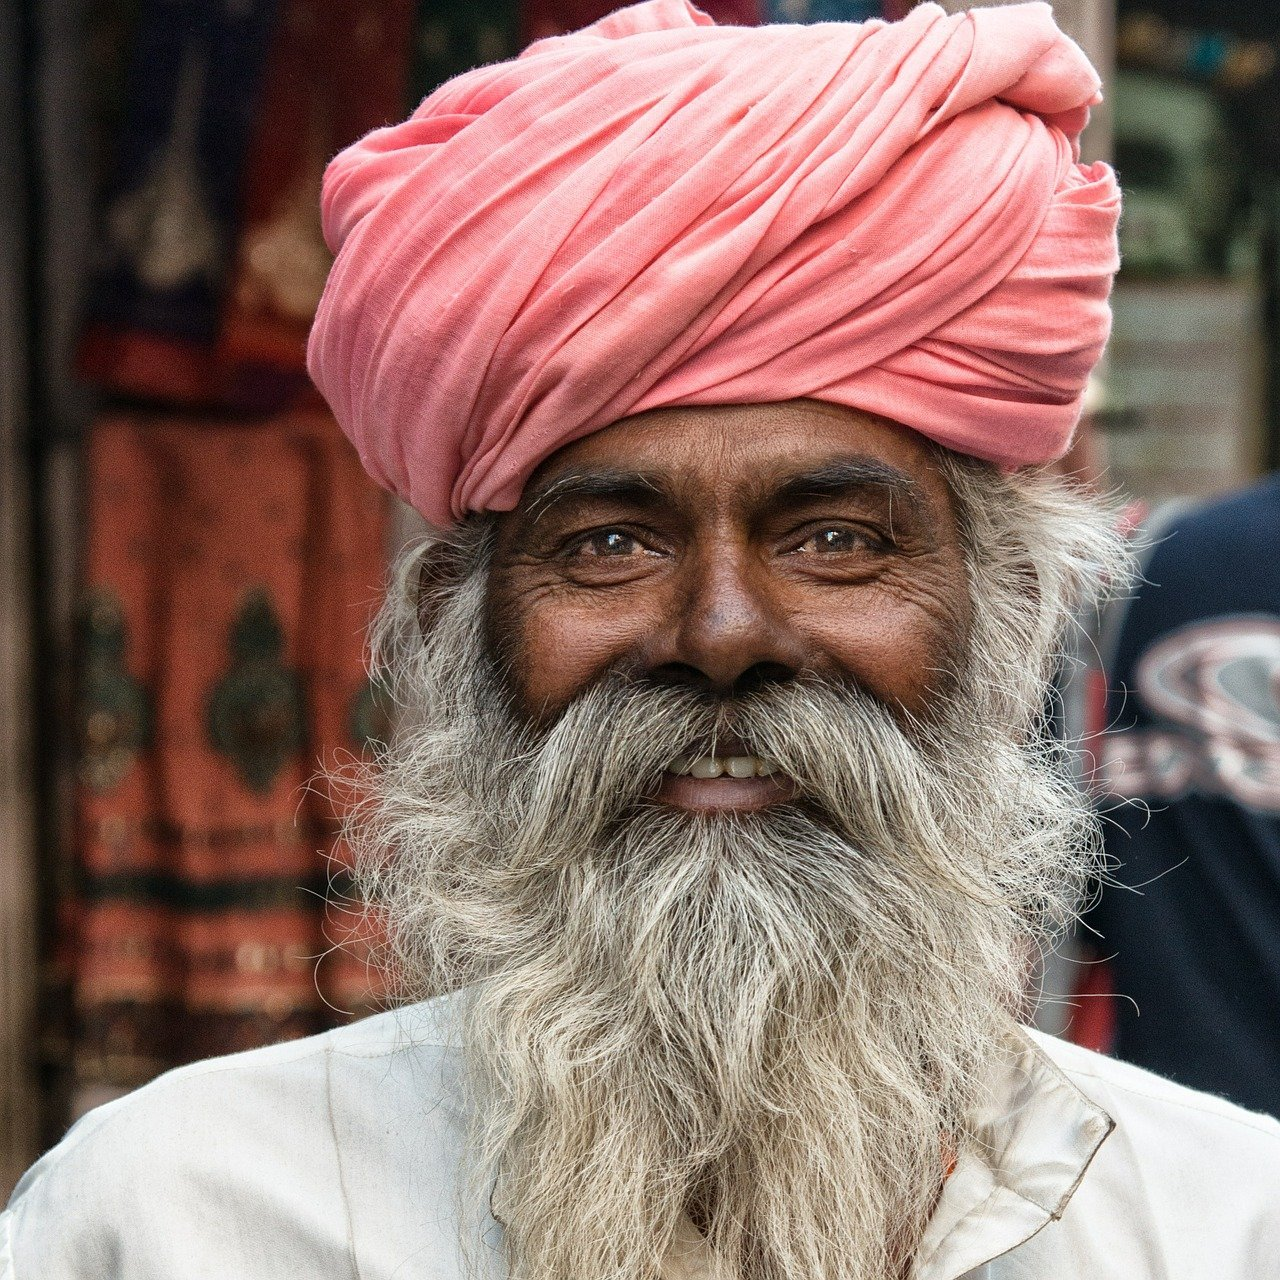 An old man with a white beard smiling at the camera   Photo: Pixabay/Jörg Peter